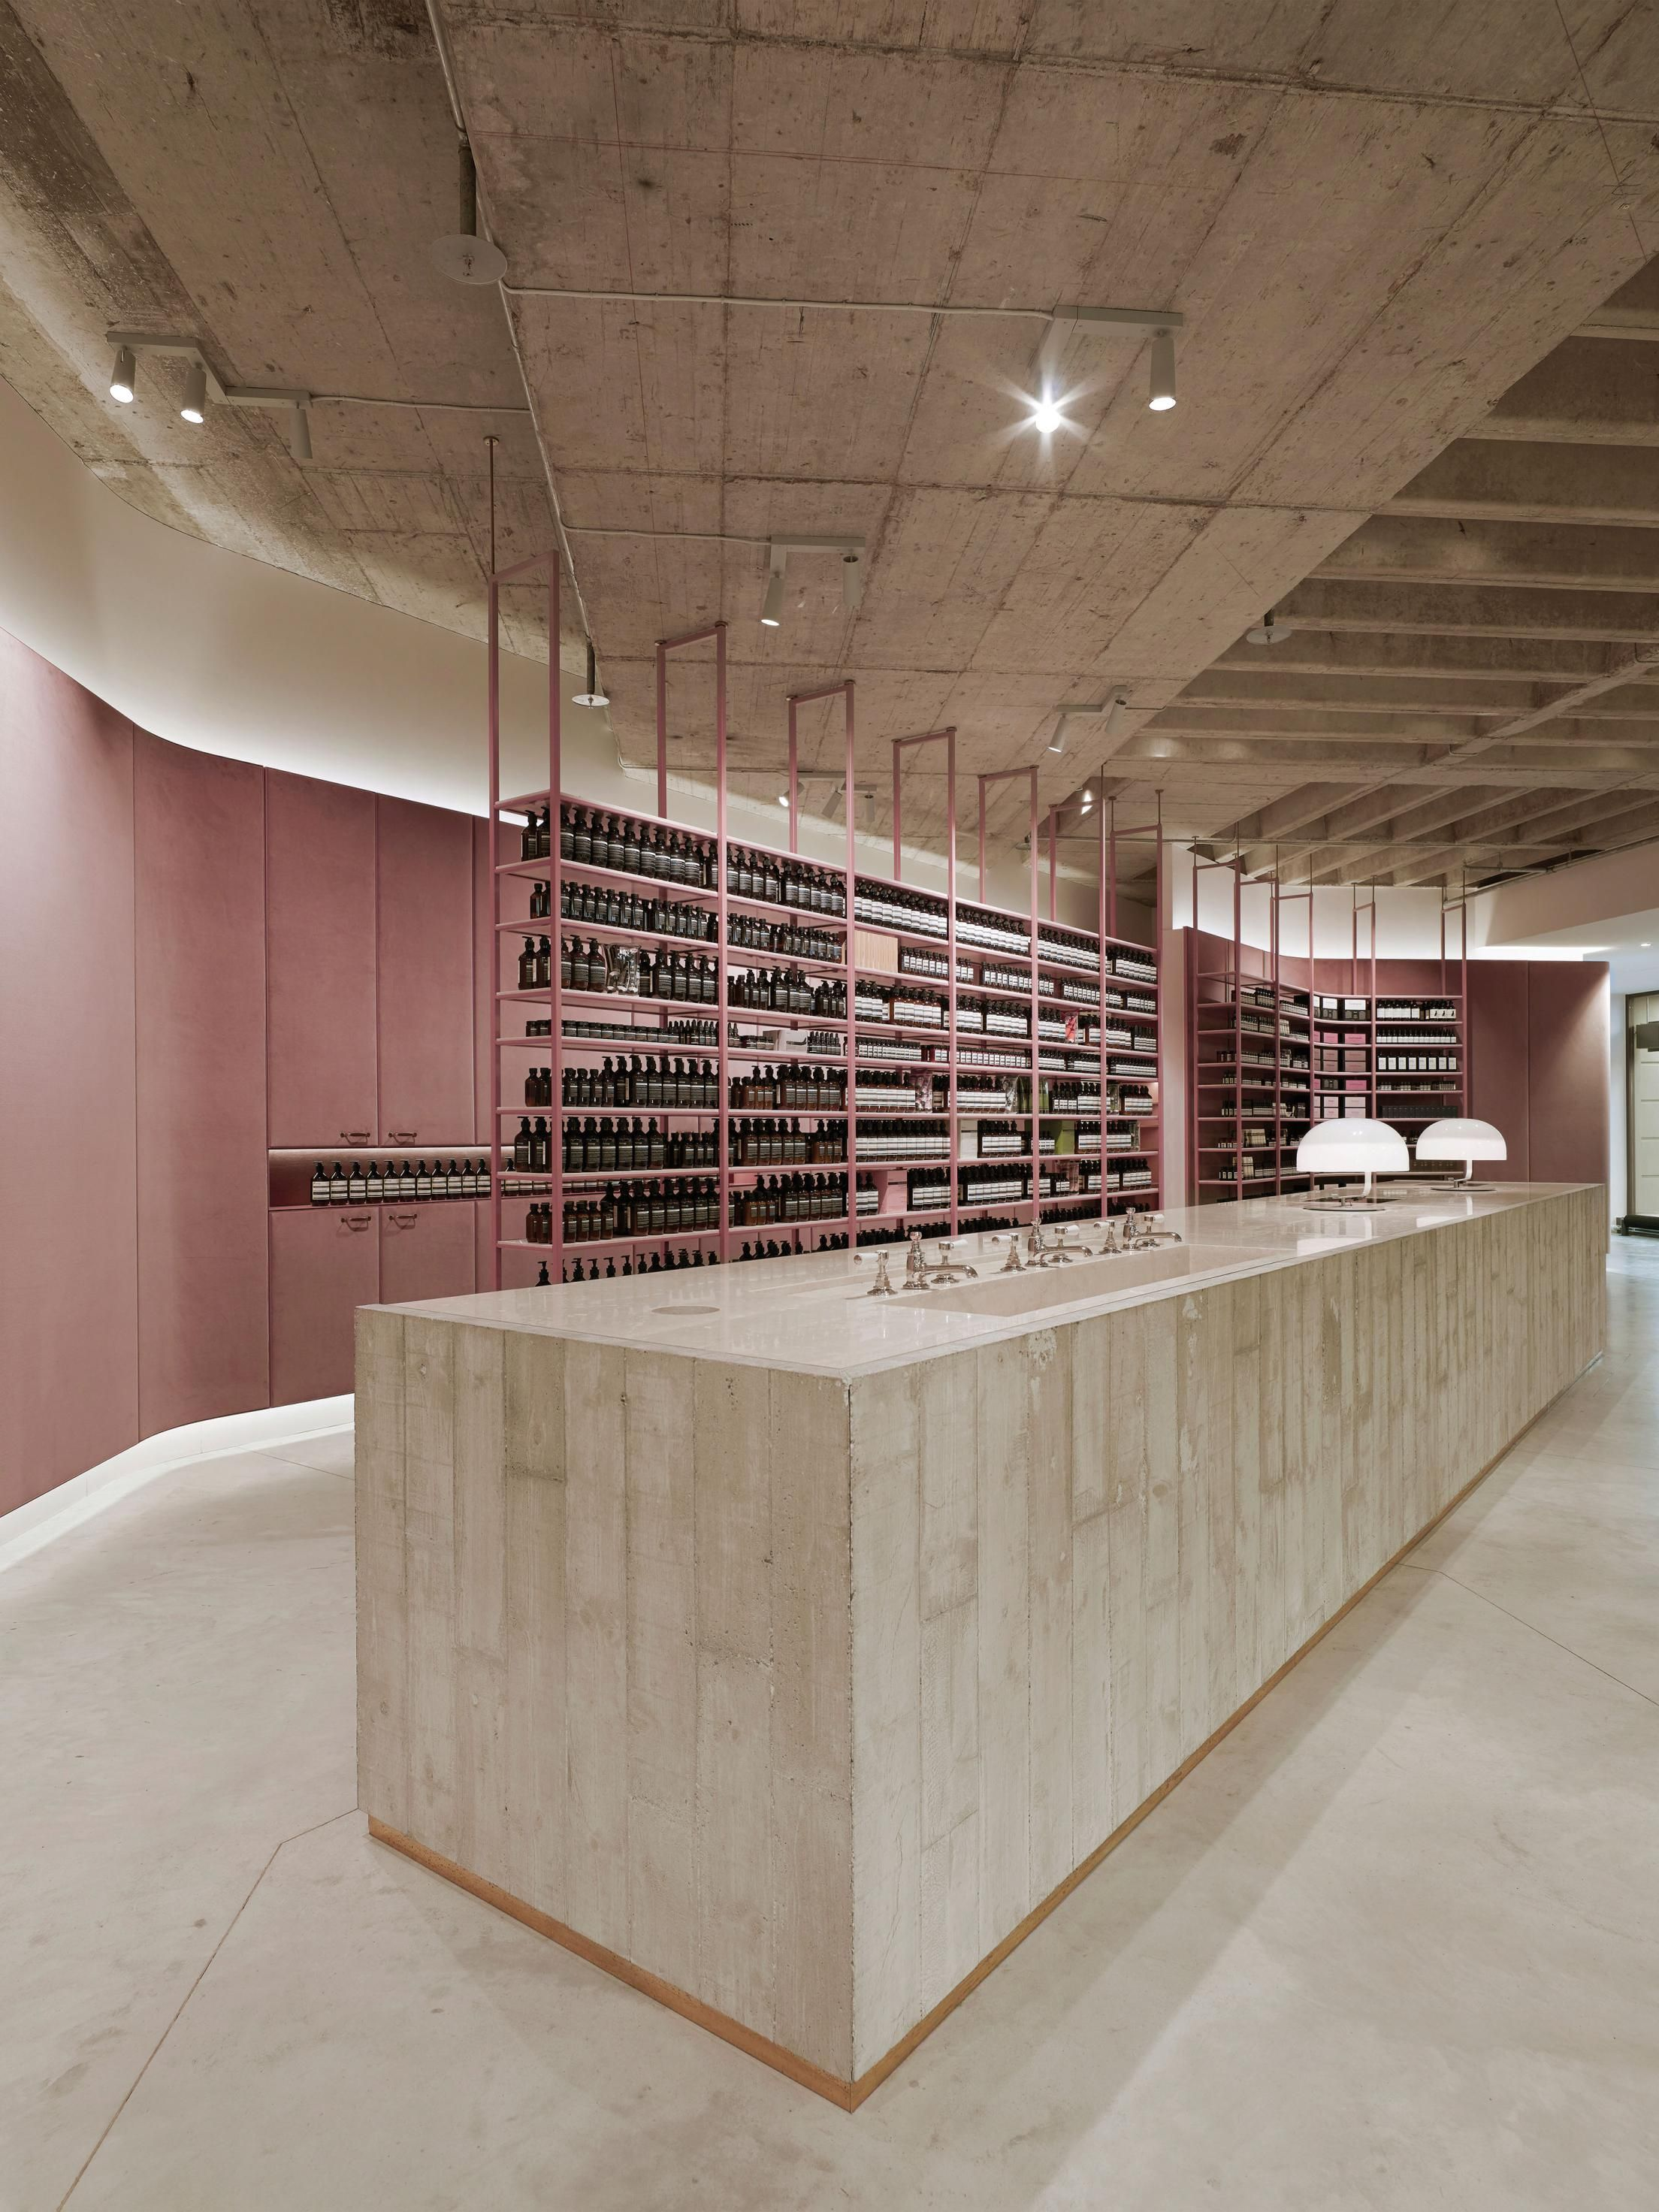 Aesop Luitpoldblock With Images Aesop Store Retail Architecture Retail Interior